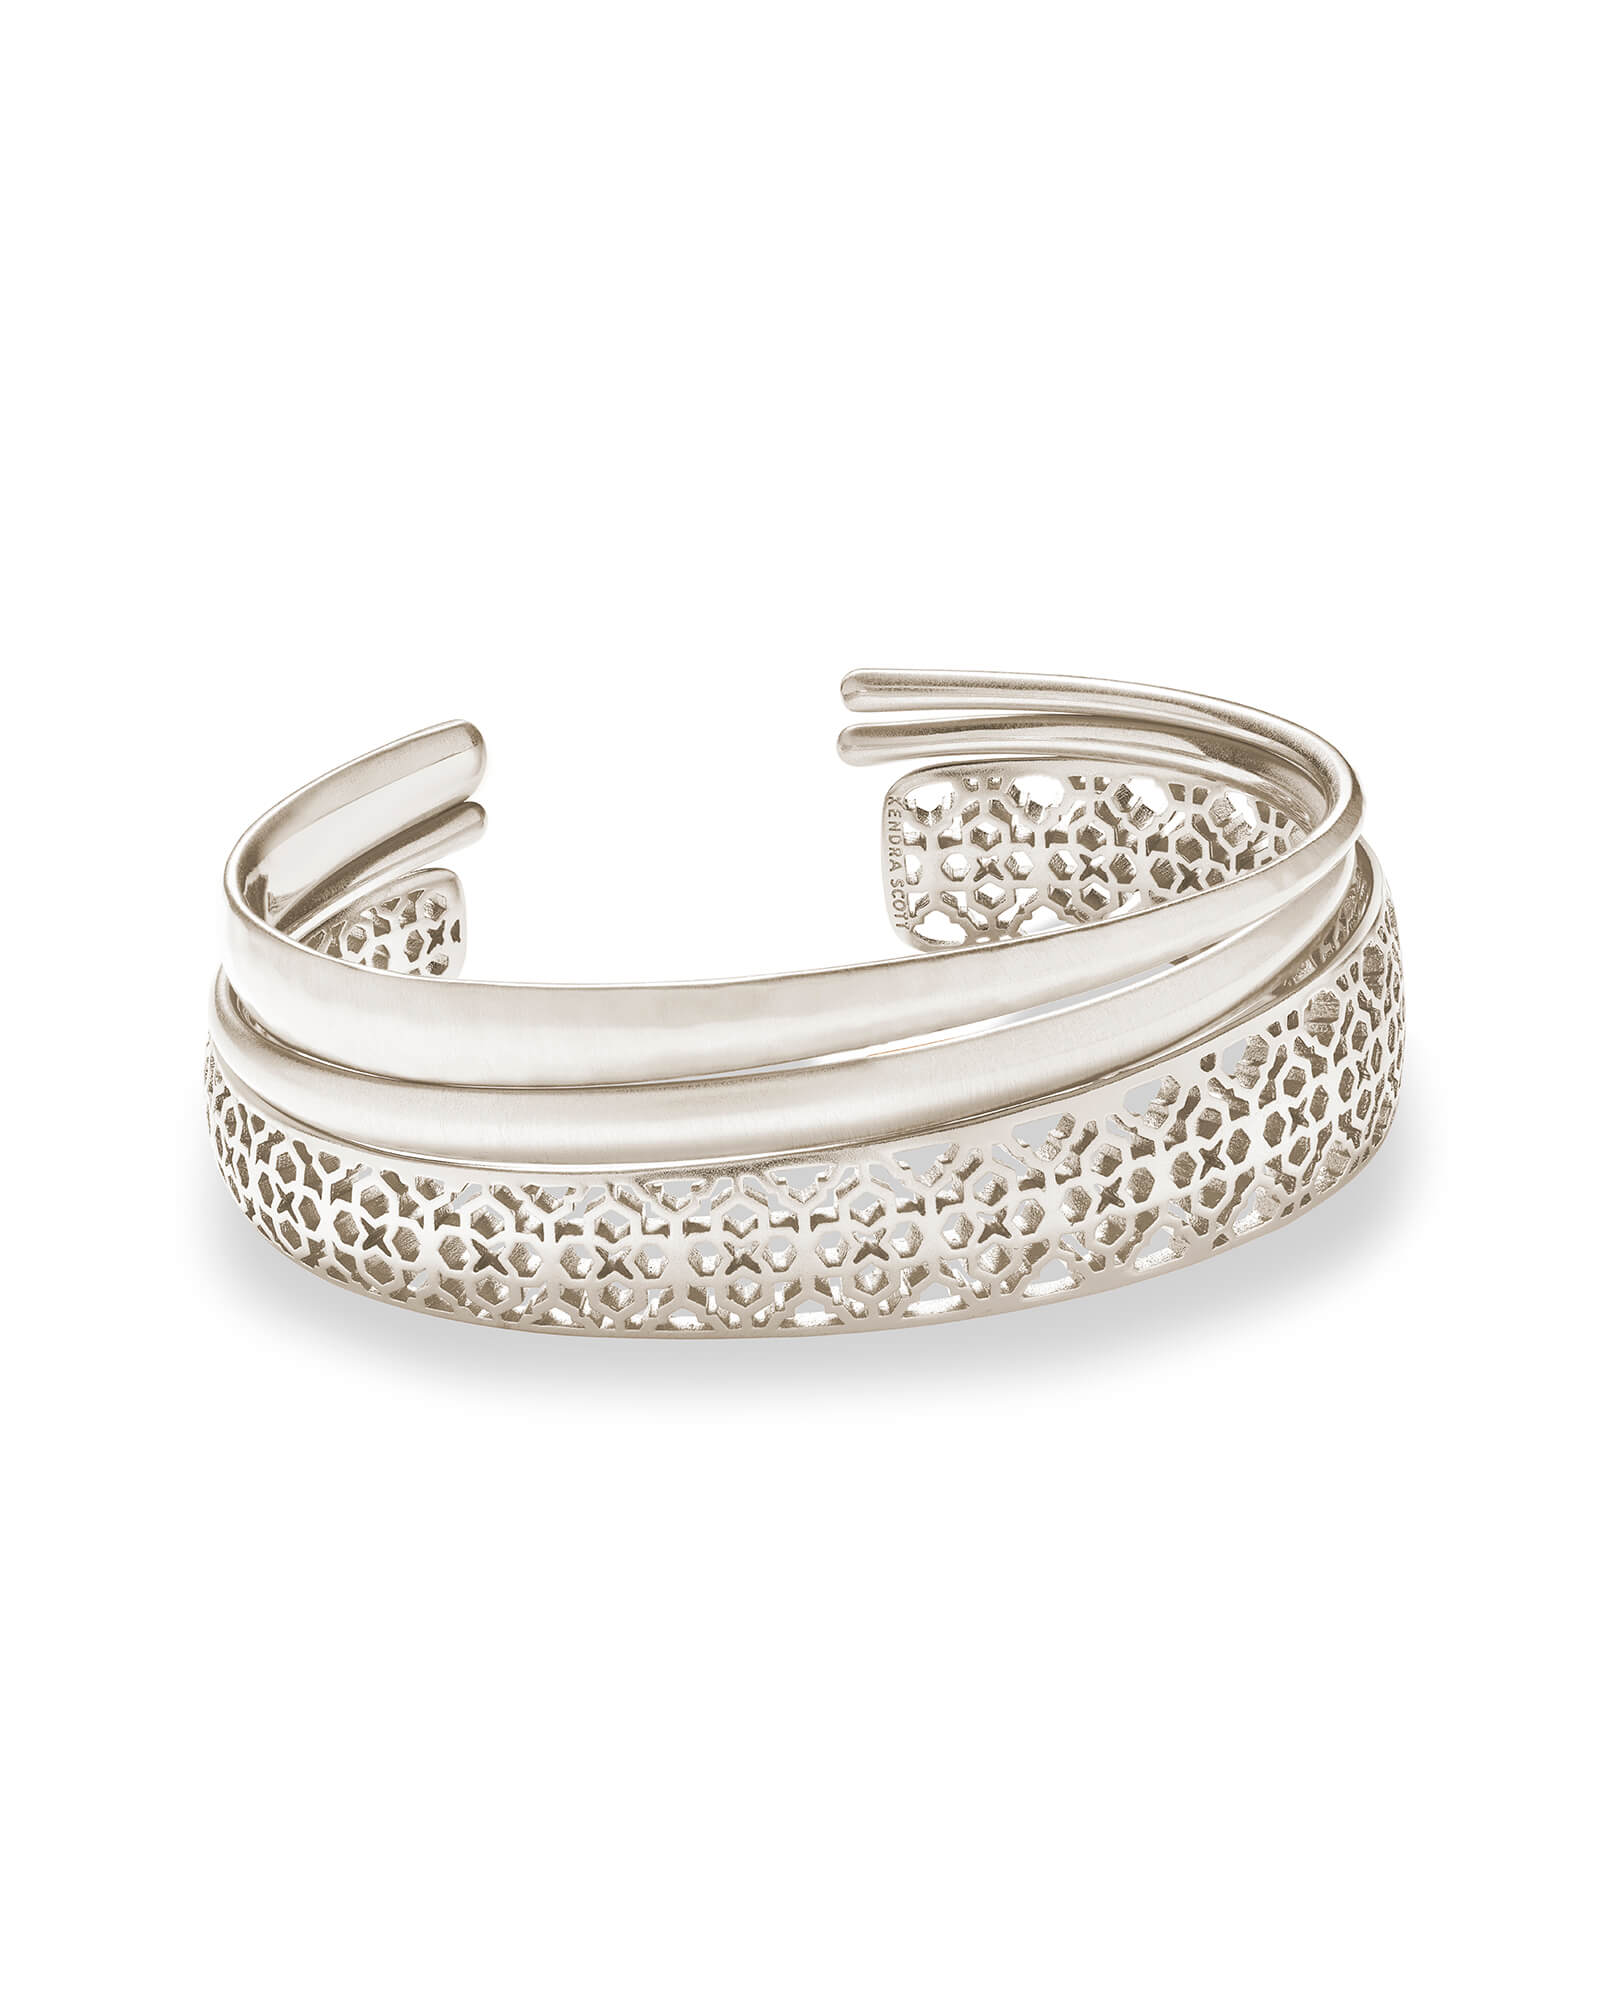 Tiana Silver Pinch Bracelet Set in Silver Filigree